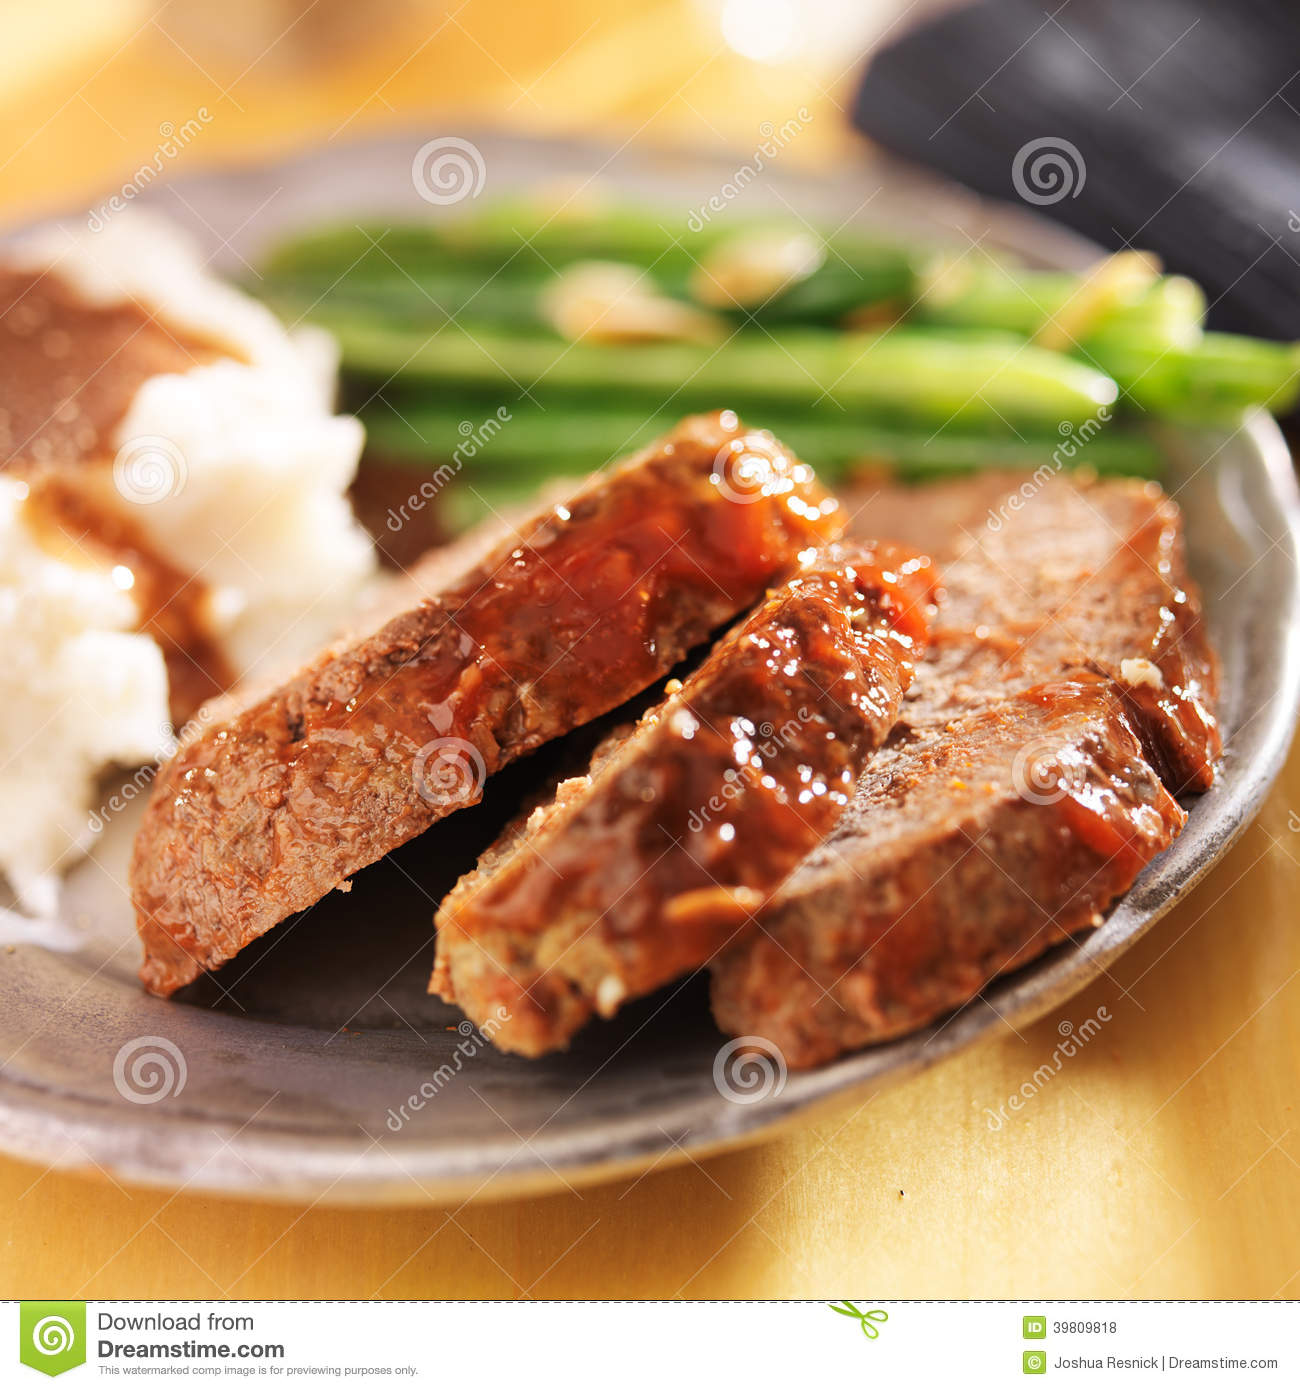 Meatloaf With Greenbeans And Mashed Potatoes Stock Photo   Image